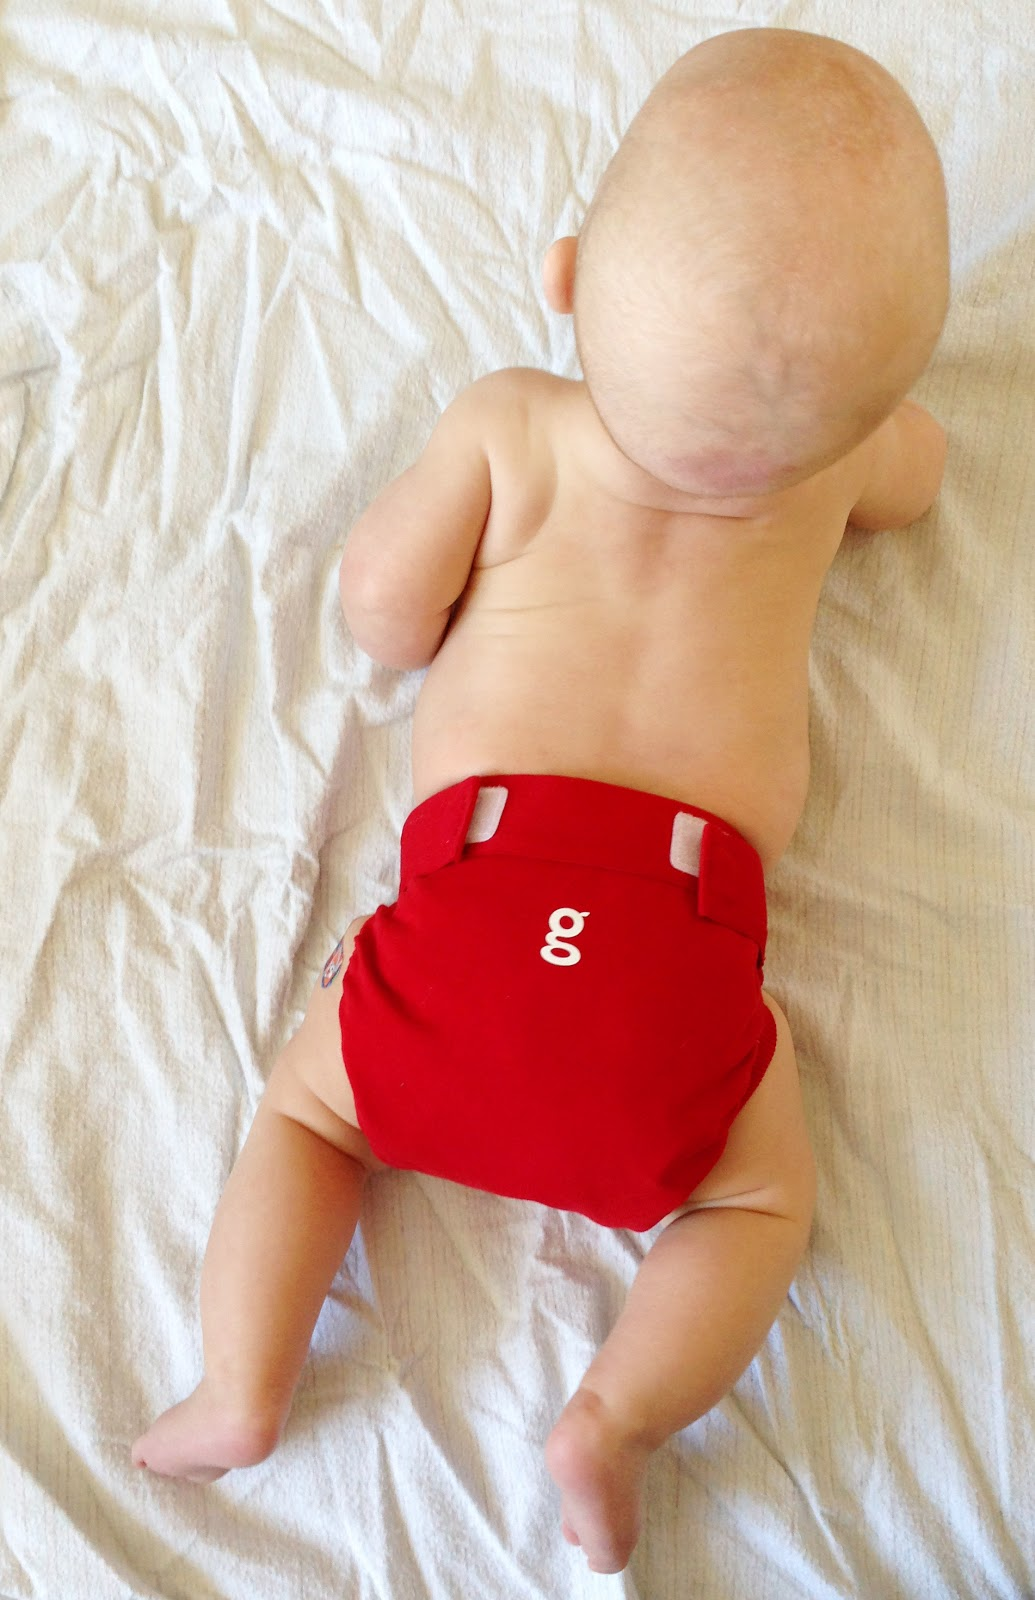 Baby in gDiapers